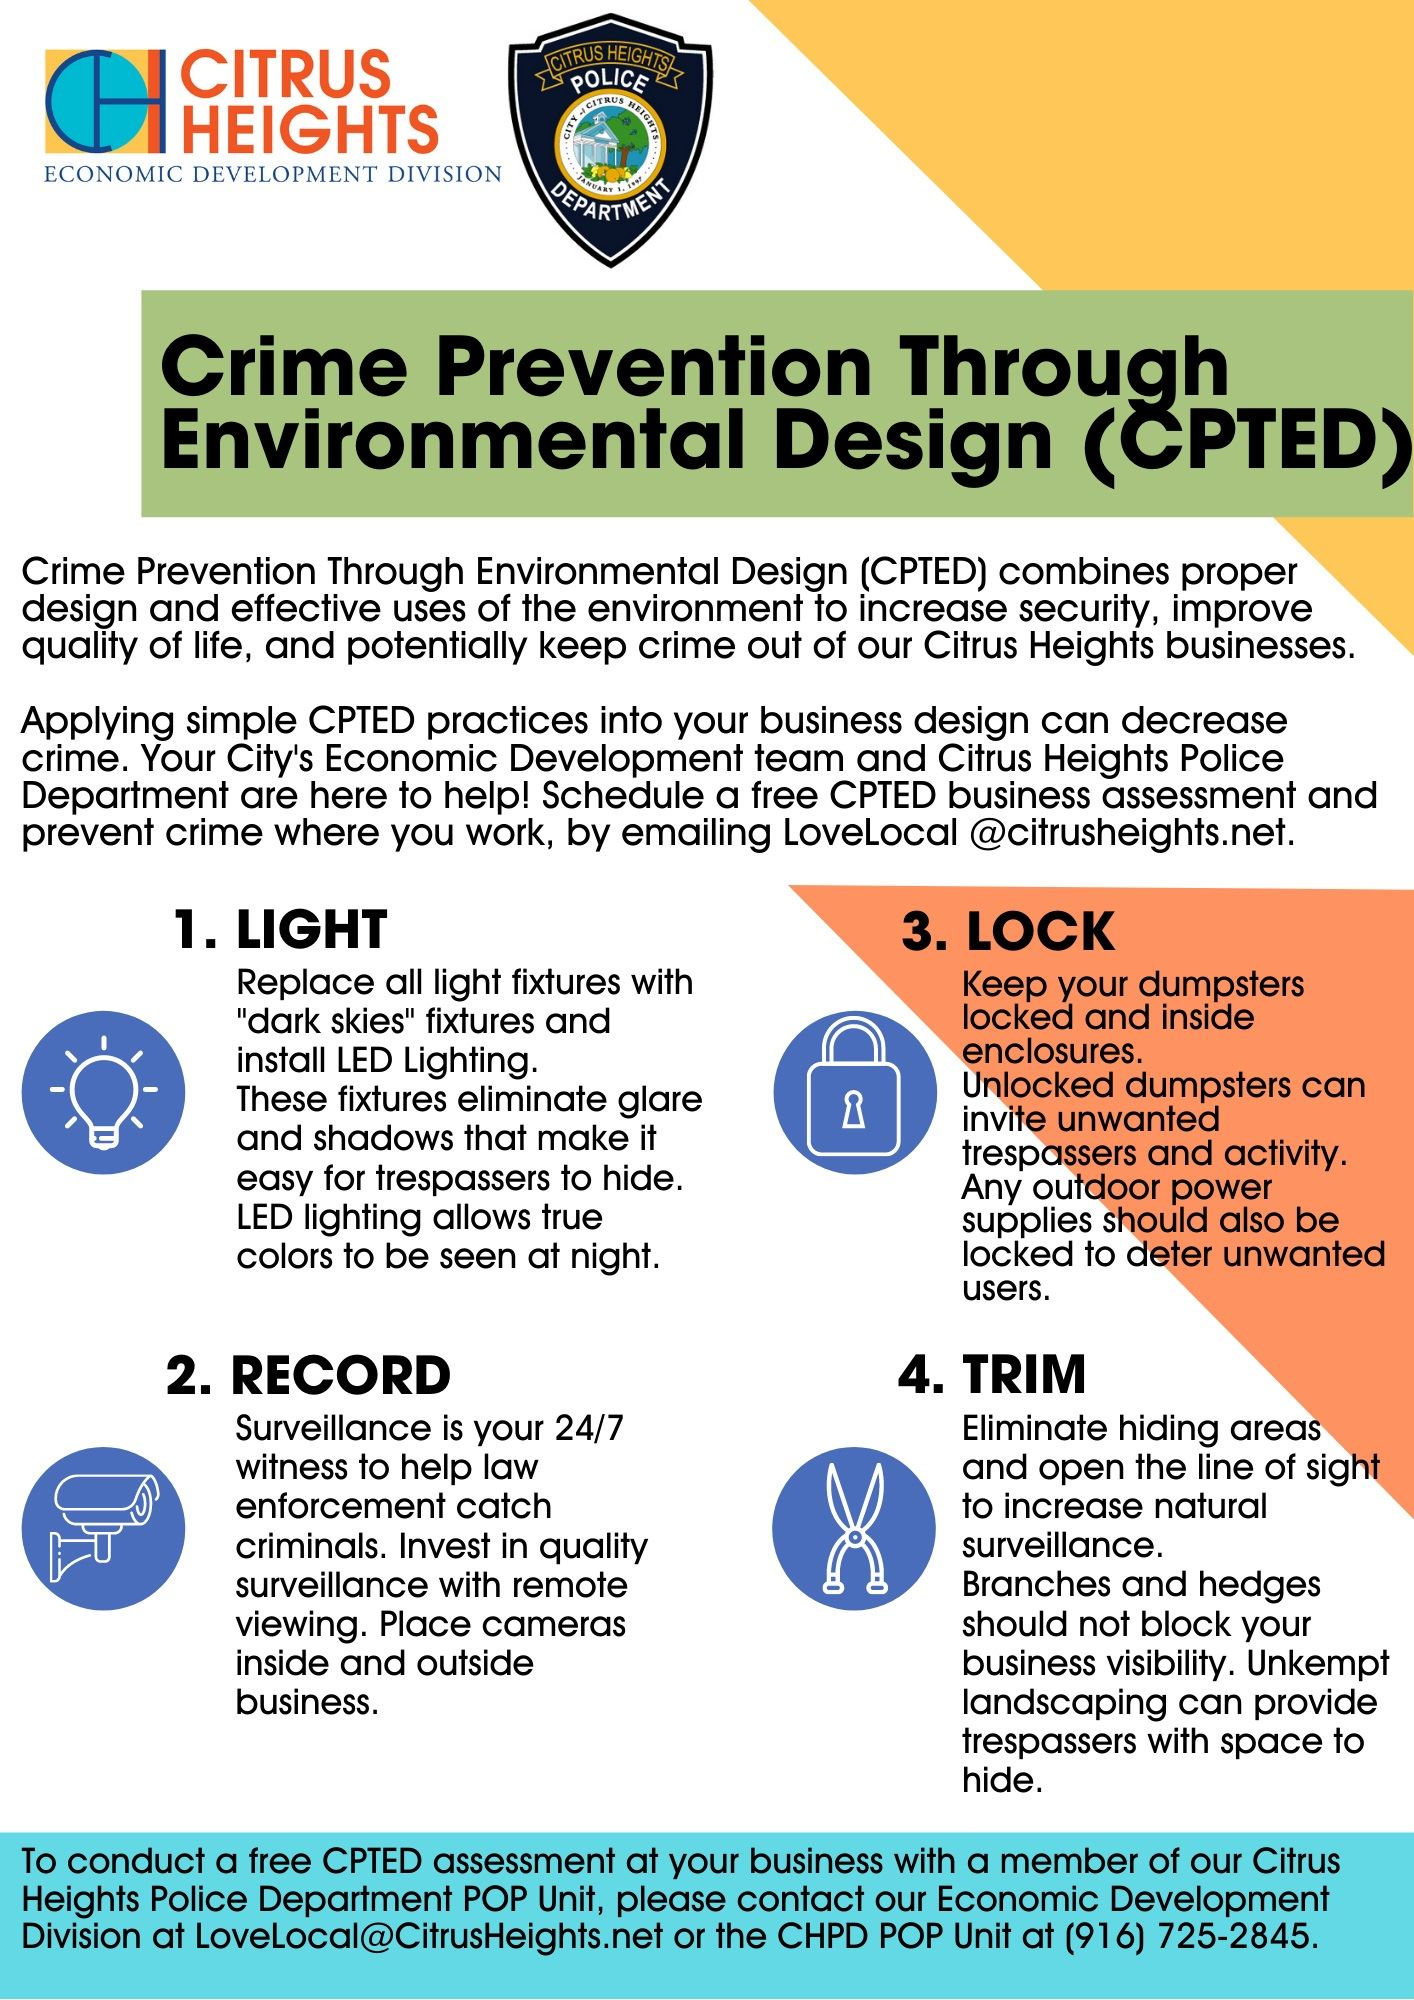 Crime Prevention Through Environmental Design Flyer Opens in new window